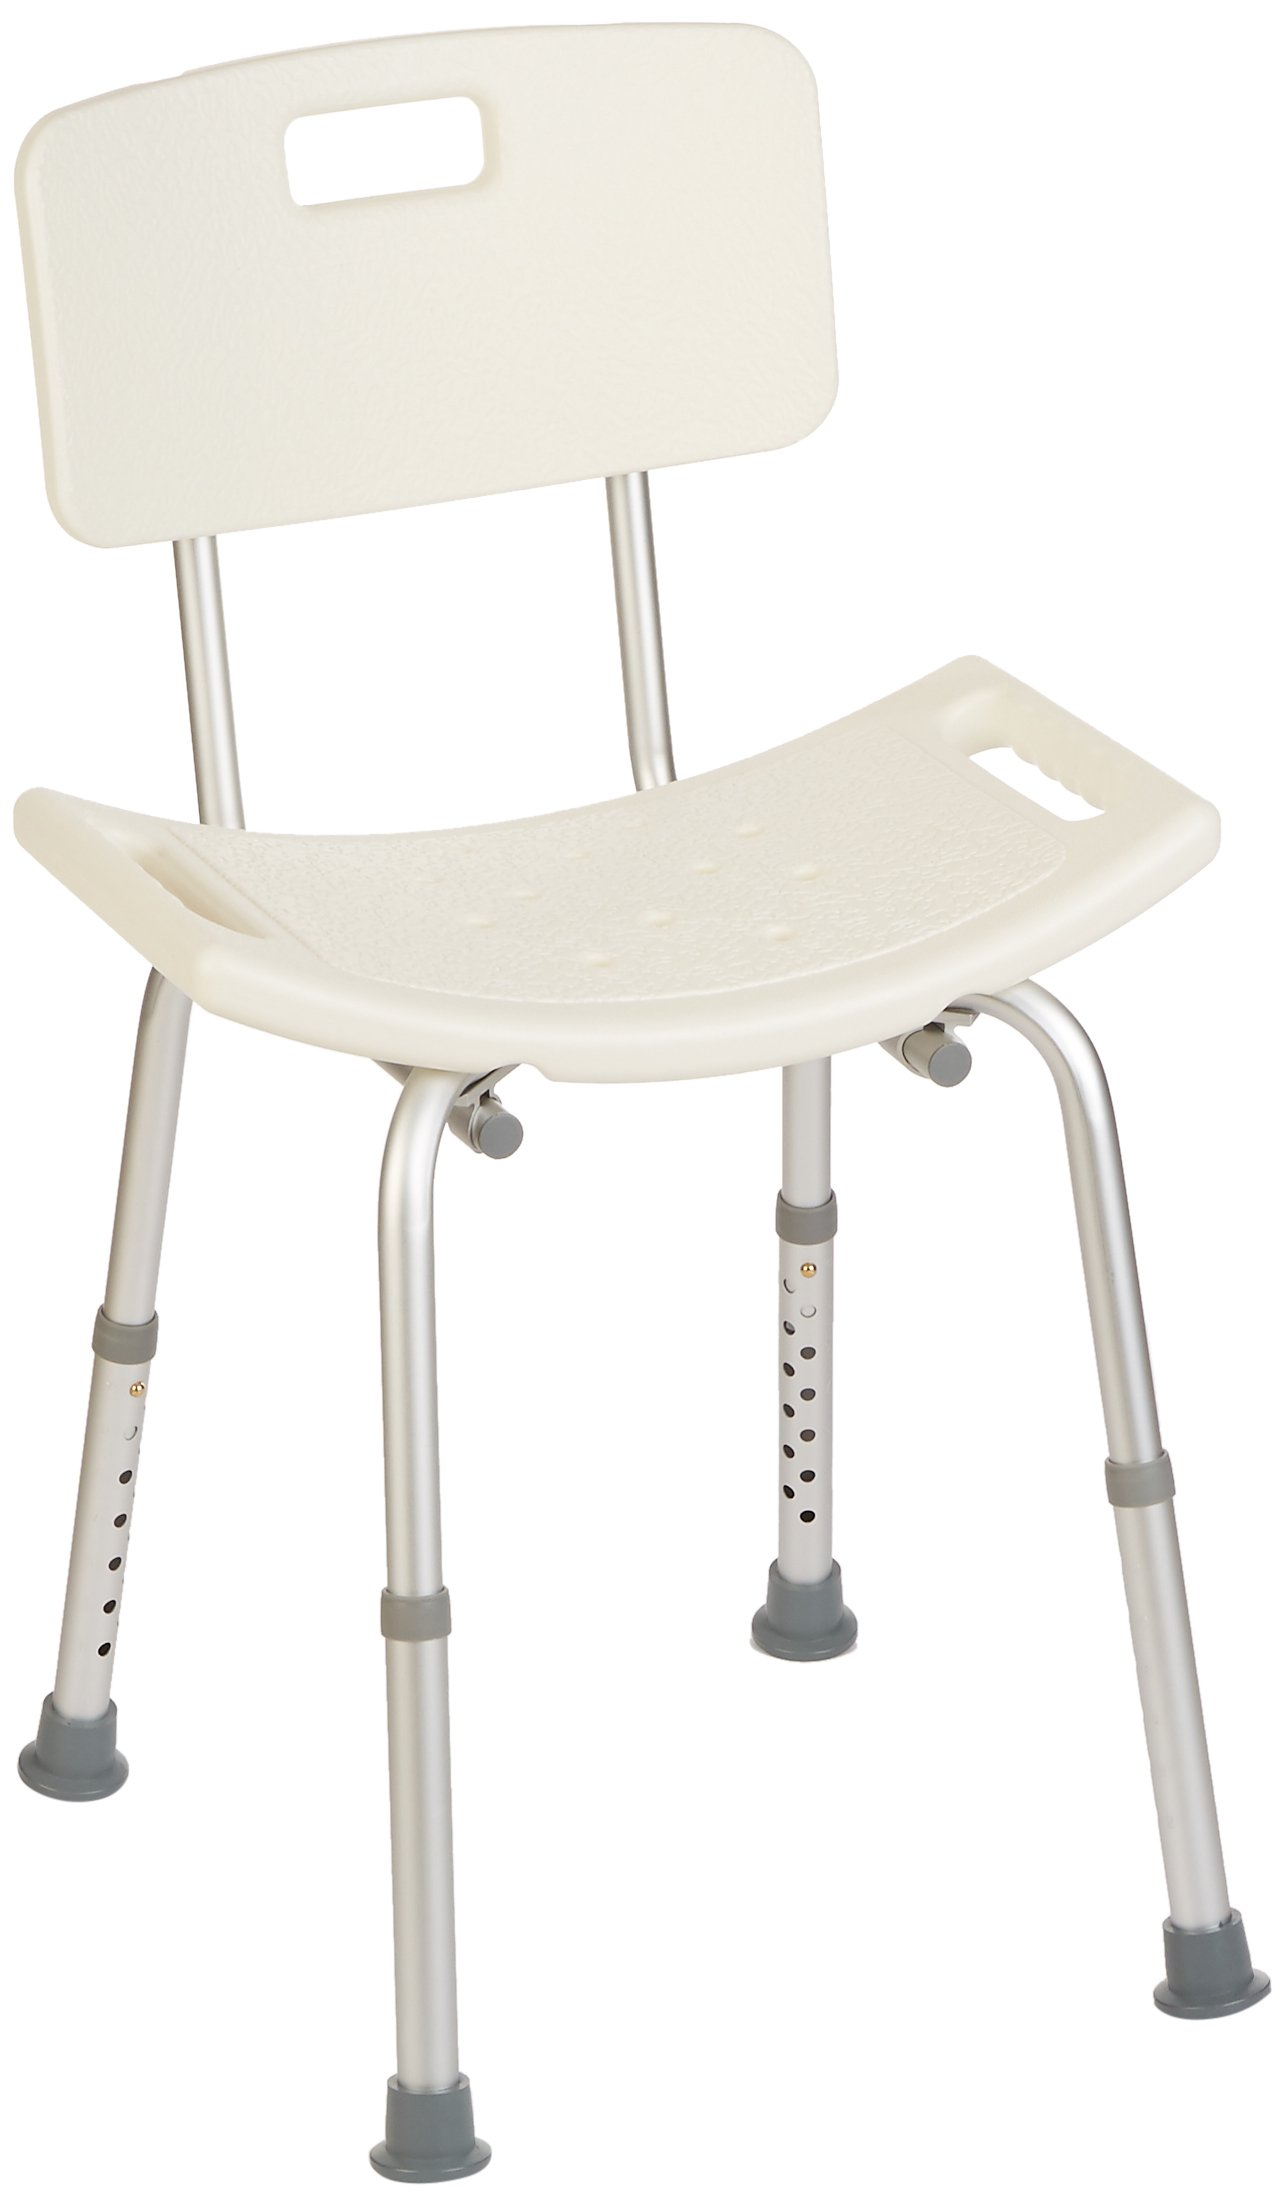 Homecraft Shower Chair with Back, Shower Seat with Removable Back & Adjustable Legs, Easy to Install Bath Stool for Elderly, Disabled, Limited Mobility, 315 lbs Weight Capacity